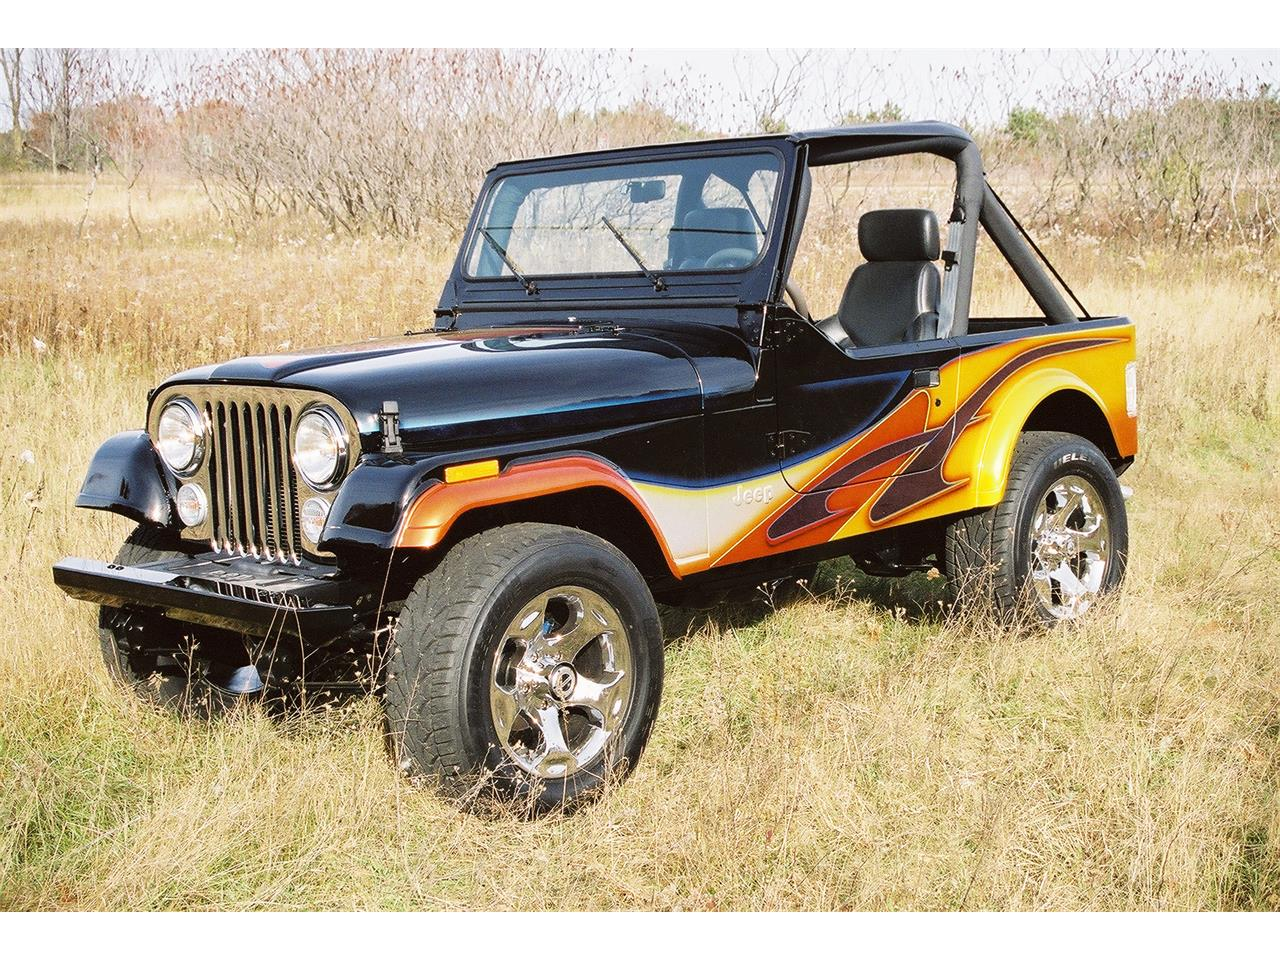 Large Picture of '83 Jeep CJ7 located in Wisconsin - $29,500.00 - KPJM